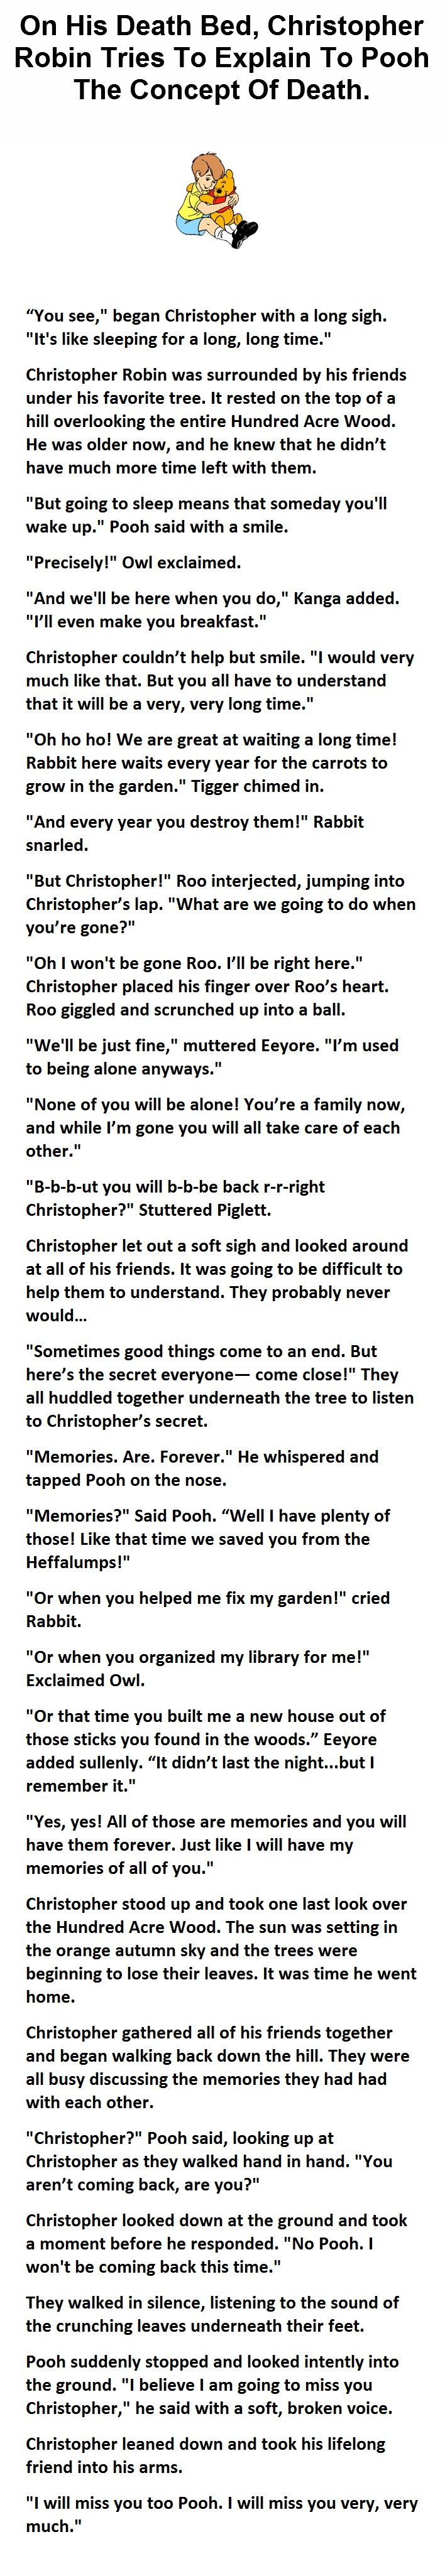 Christopher Robin says goodbye to Pooh. No heart will remain untouched.                                                                                                                                                                                 More